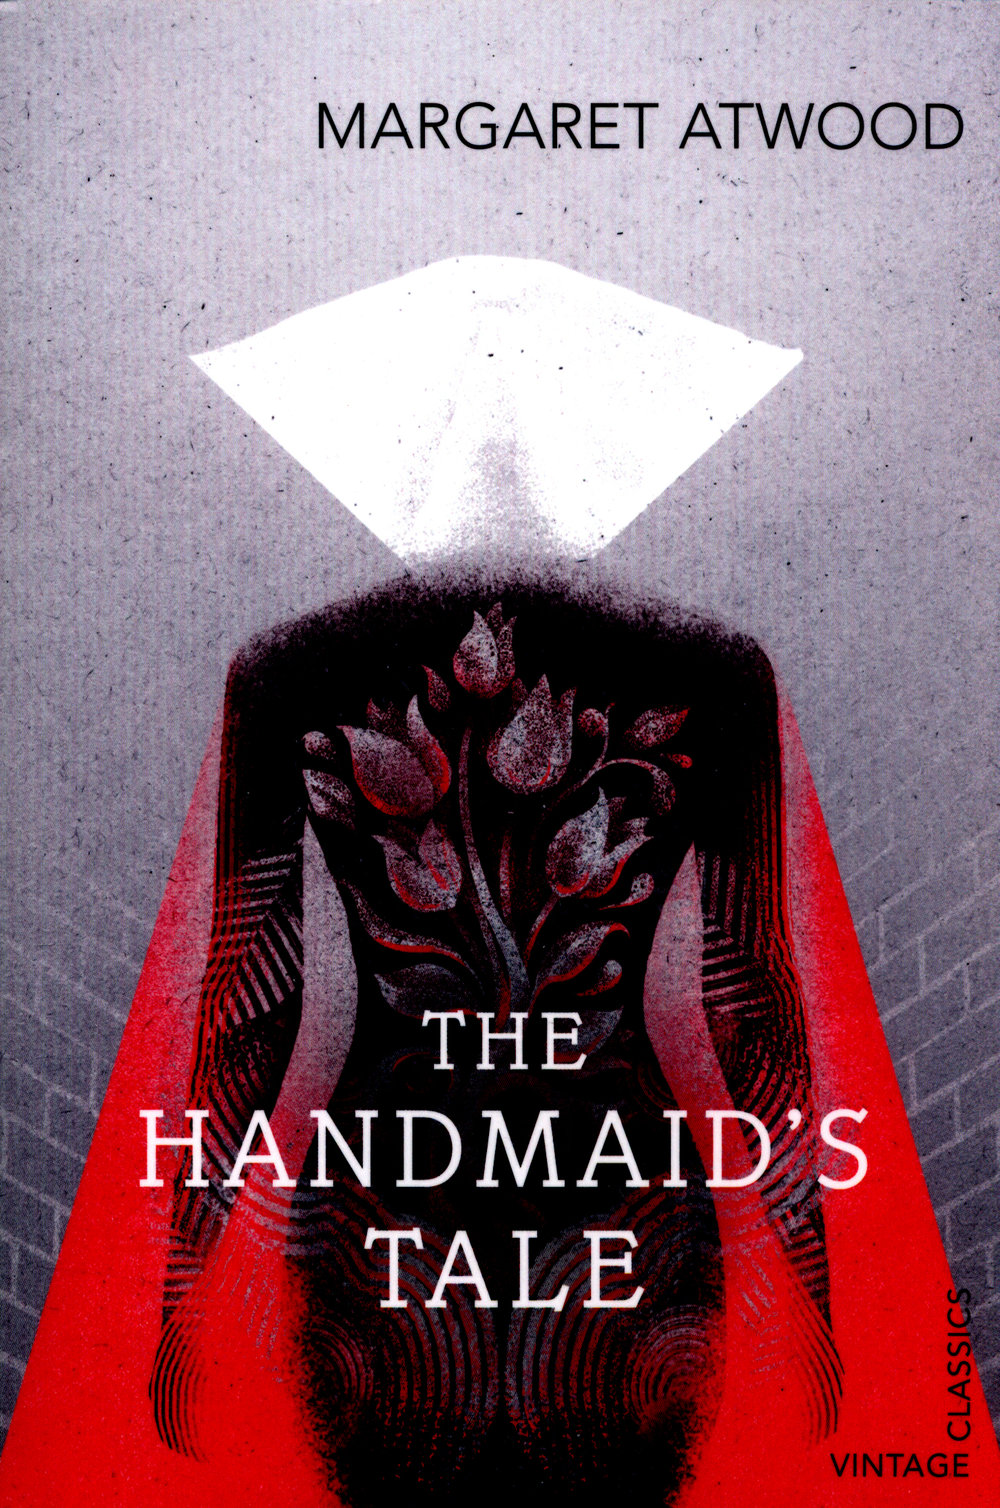 the handmaid's tale -margaret atwood - Despite it's debut as a Hulu series (definitely worth watching for the cinematic beauty), the paper version fills you with a lot of the mental processes and thoughts of Offred. The series deviates slightly, with much more drama and exaggerations, though that seems necessarily due to the shortness of time in the written version. The book provides a dystopian extension of many of the current debates surrounding womanhood and femininity, chronicling the consequences of decreased fertility and objectification of women as reproductive vessels. It is beautifully written and will keep you turning the pages long into the night.